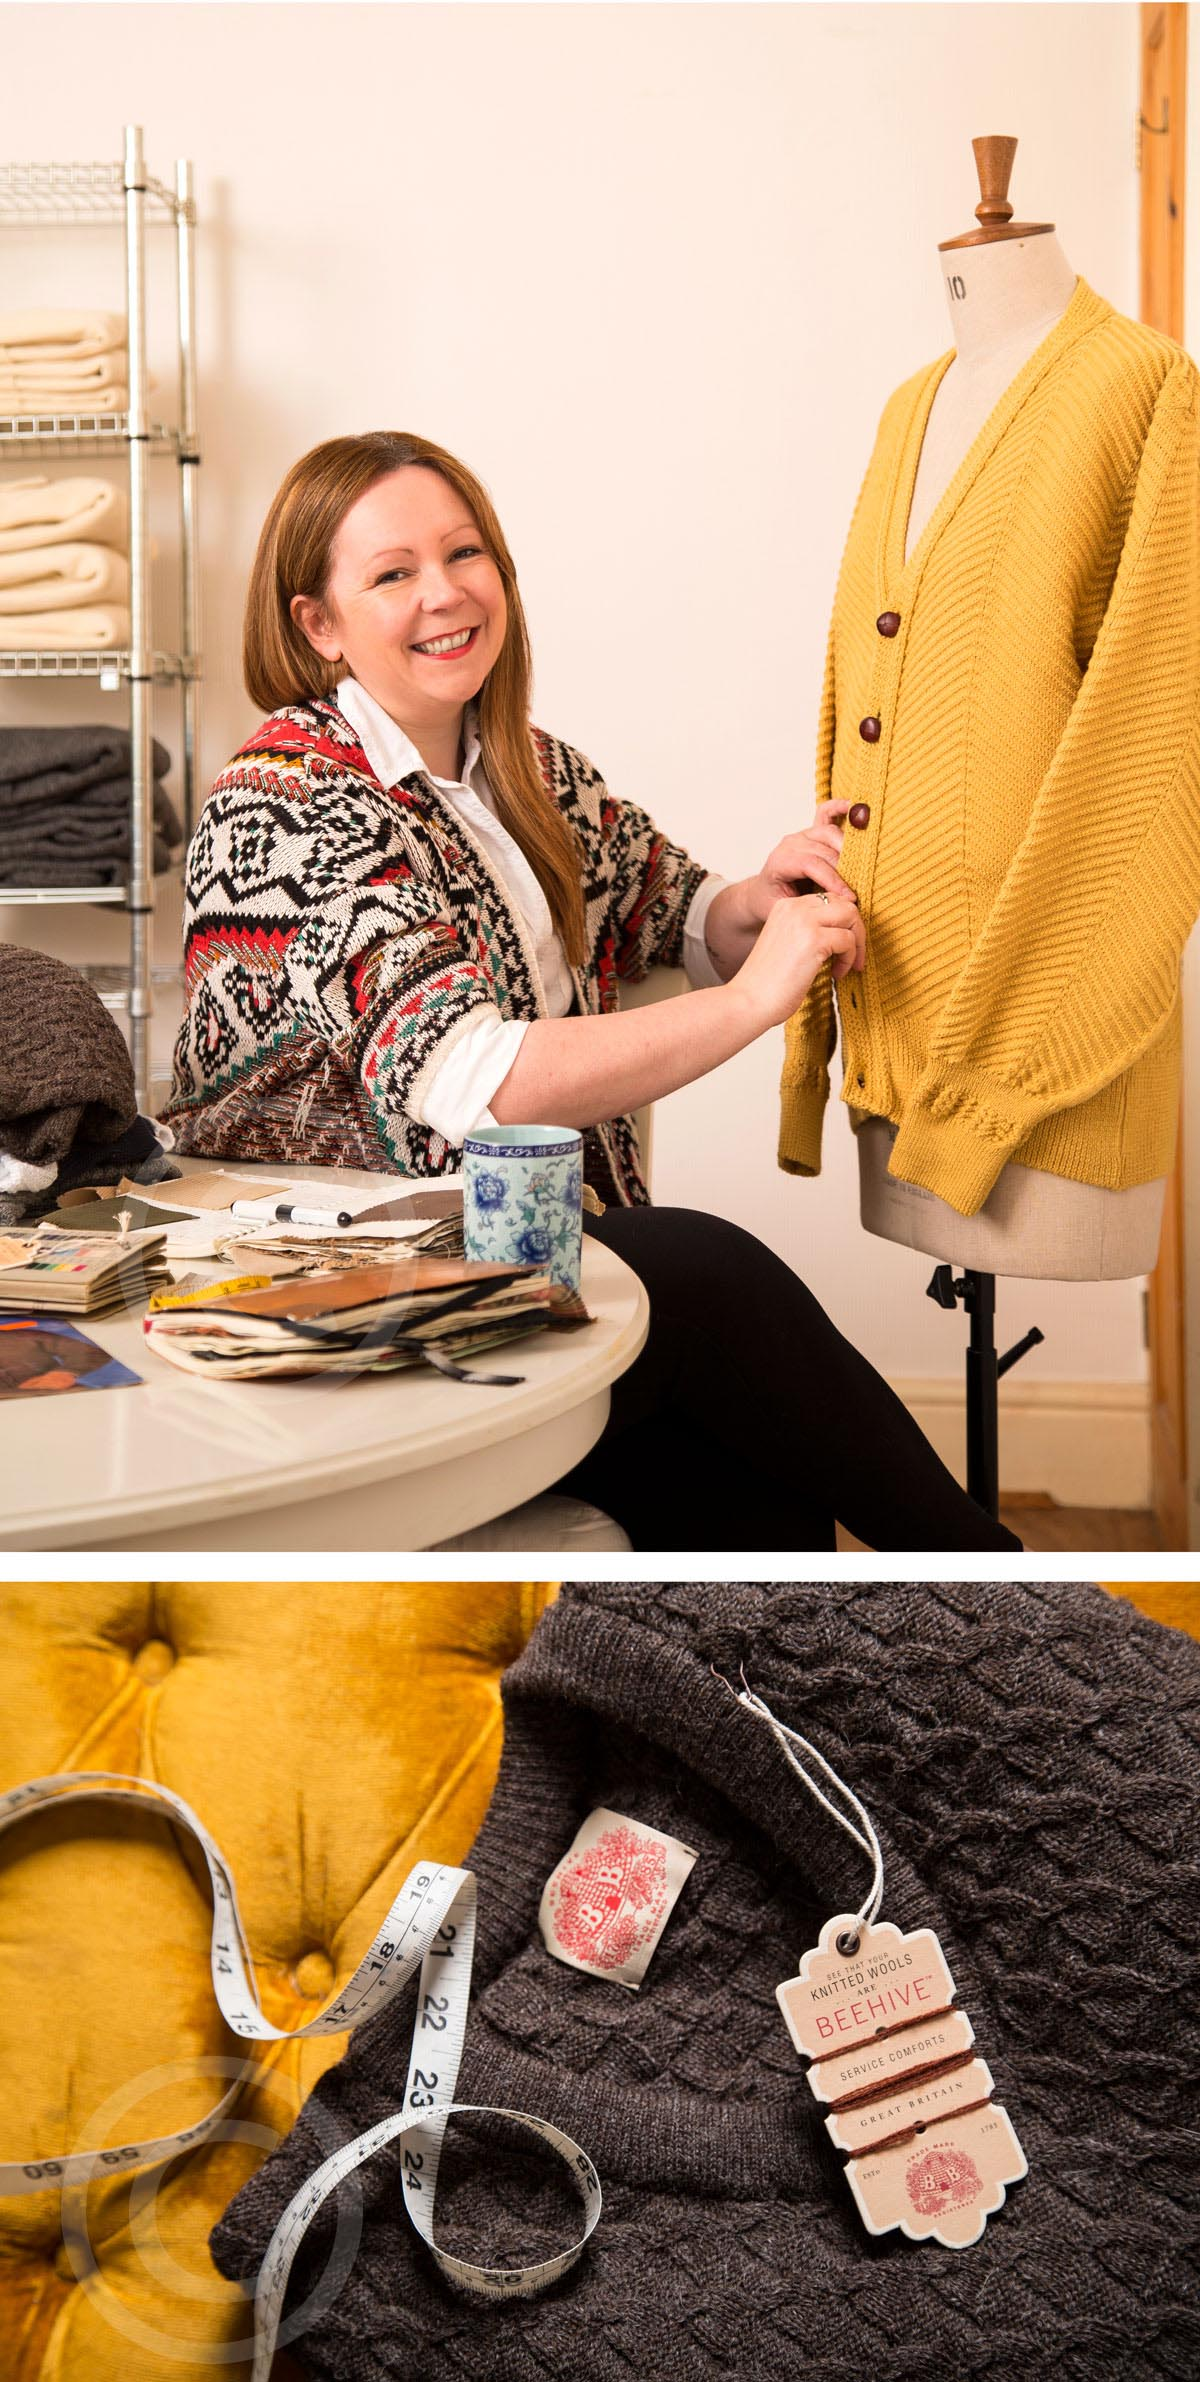 Beehive-knitware-andrea-prima-magazine-yorkshire-north-darlington-editorial